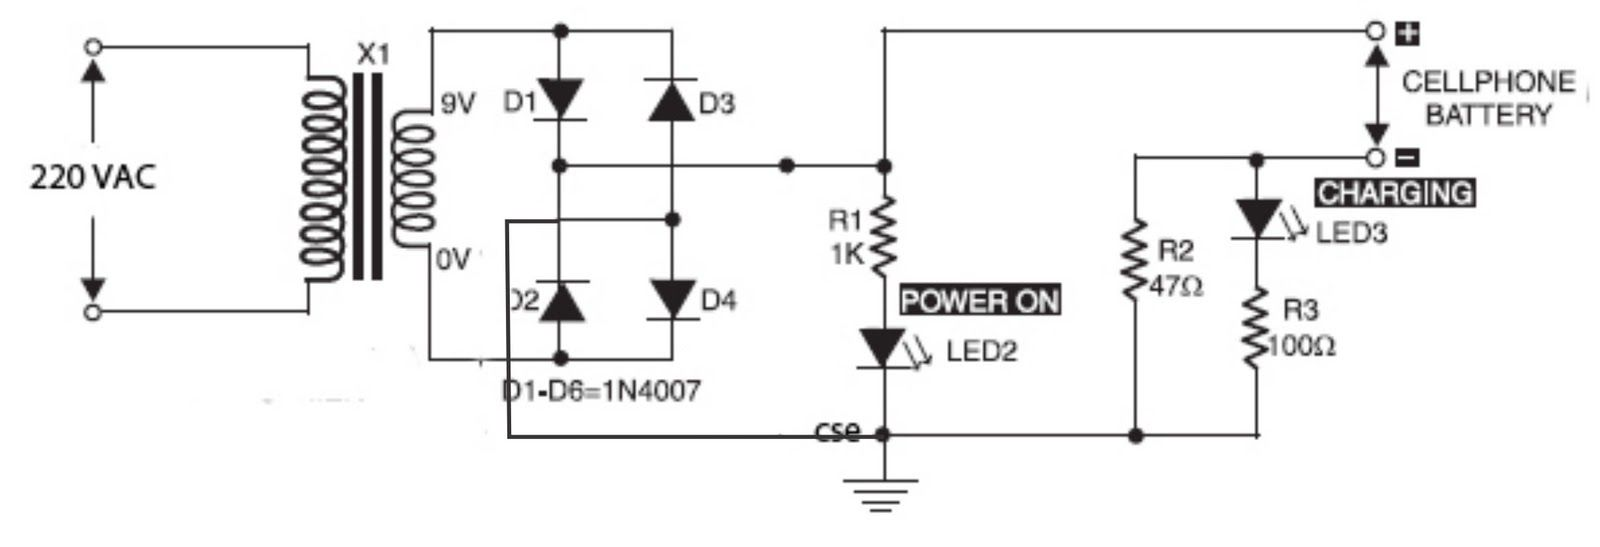 medium resolution of simple rapid battery charger circuit diagram electronic circuit mobile battery charger circuit diagram electronic circuit diagrams